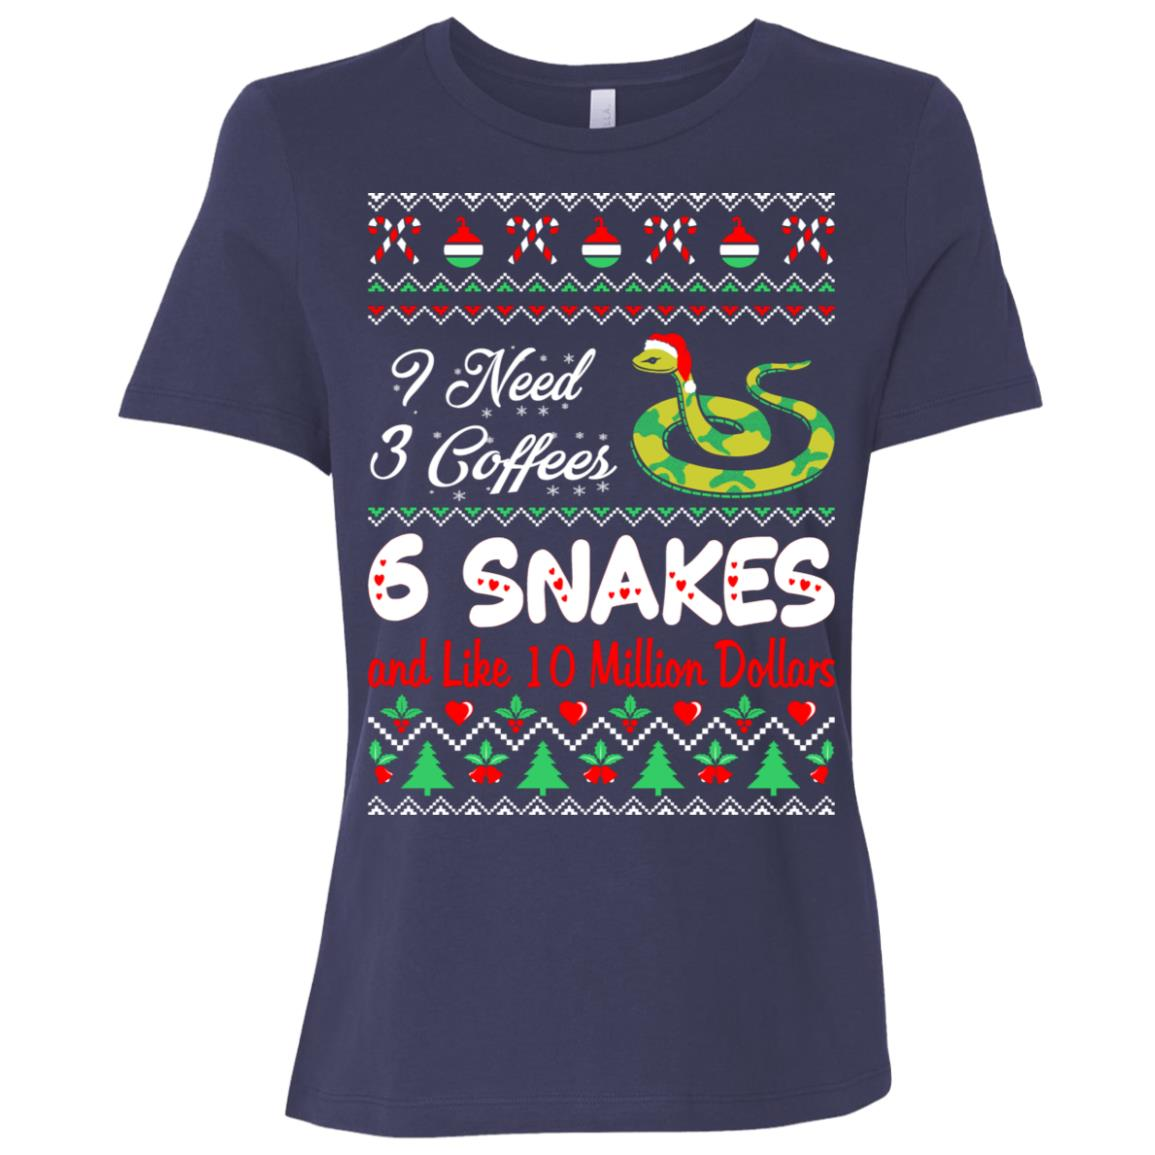 Need 3 Coffees 6 Snakes Christmas Ugly Sweater Women Short Sleeve T-Shirt